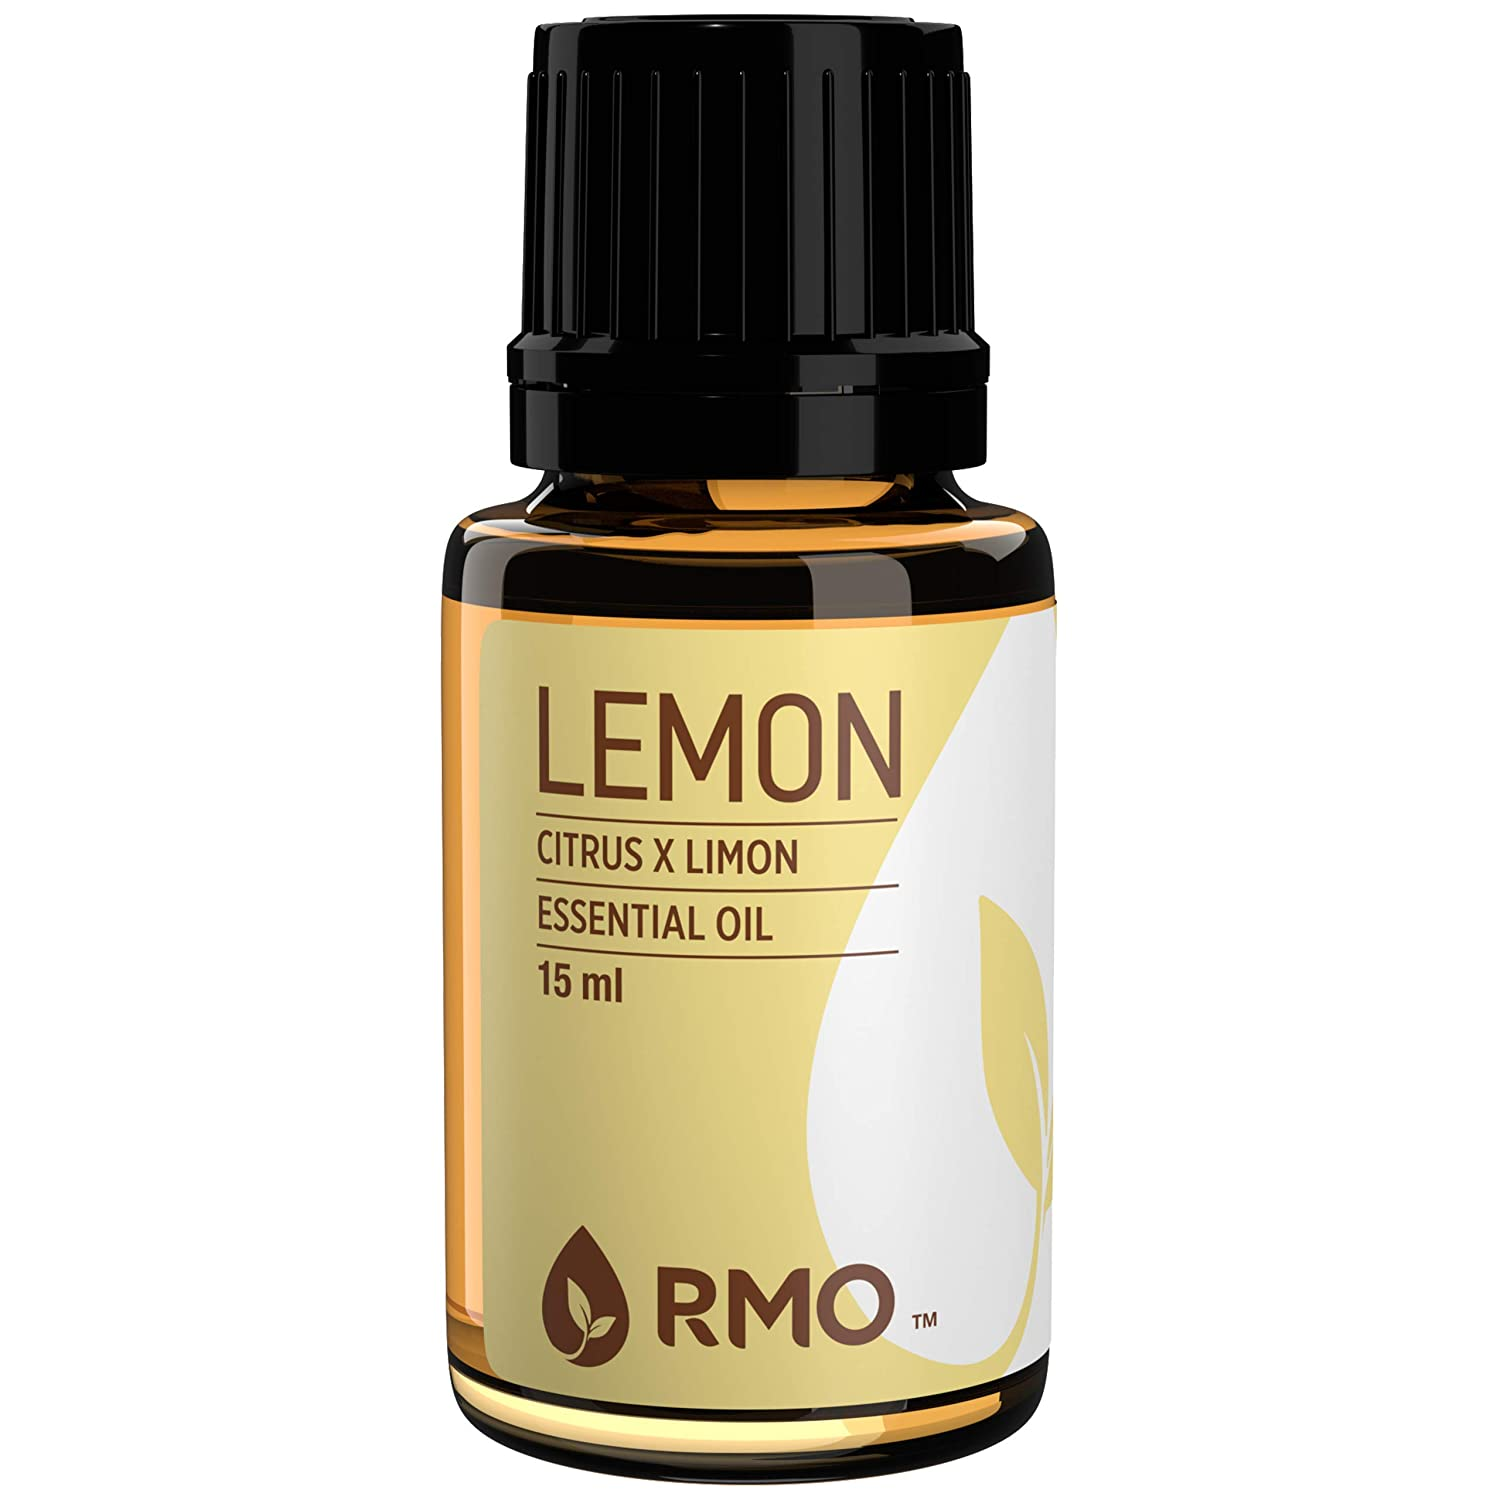 Rocky Mountain Oils Lemon Essential Oil 15ml - 100% Pure Essential Oils